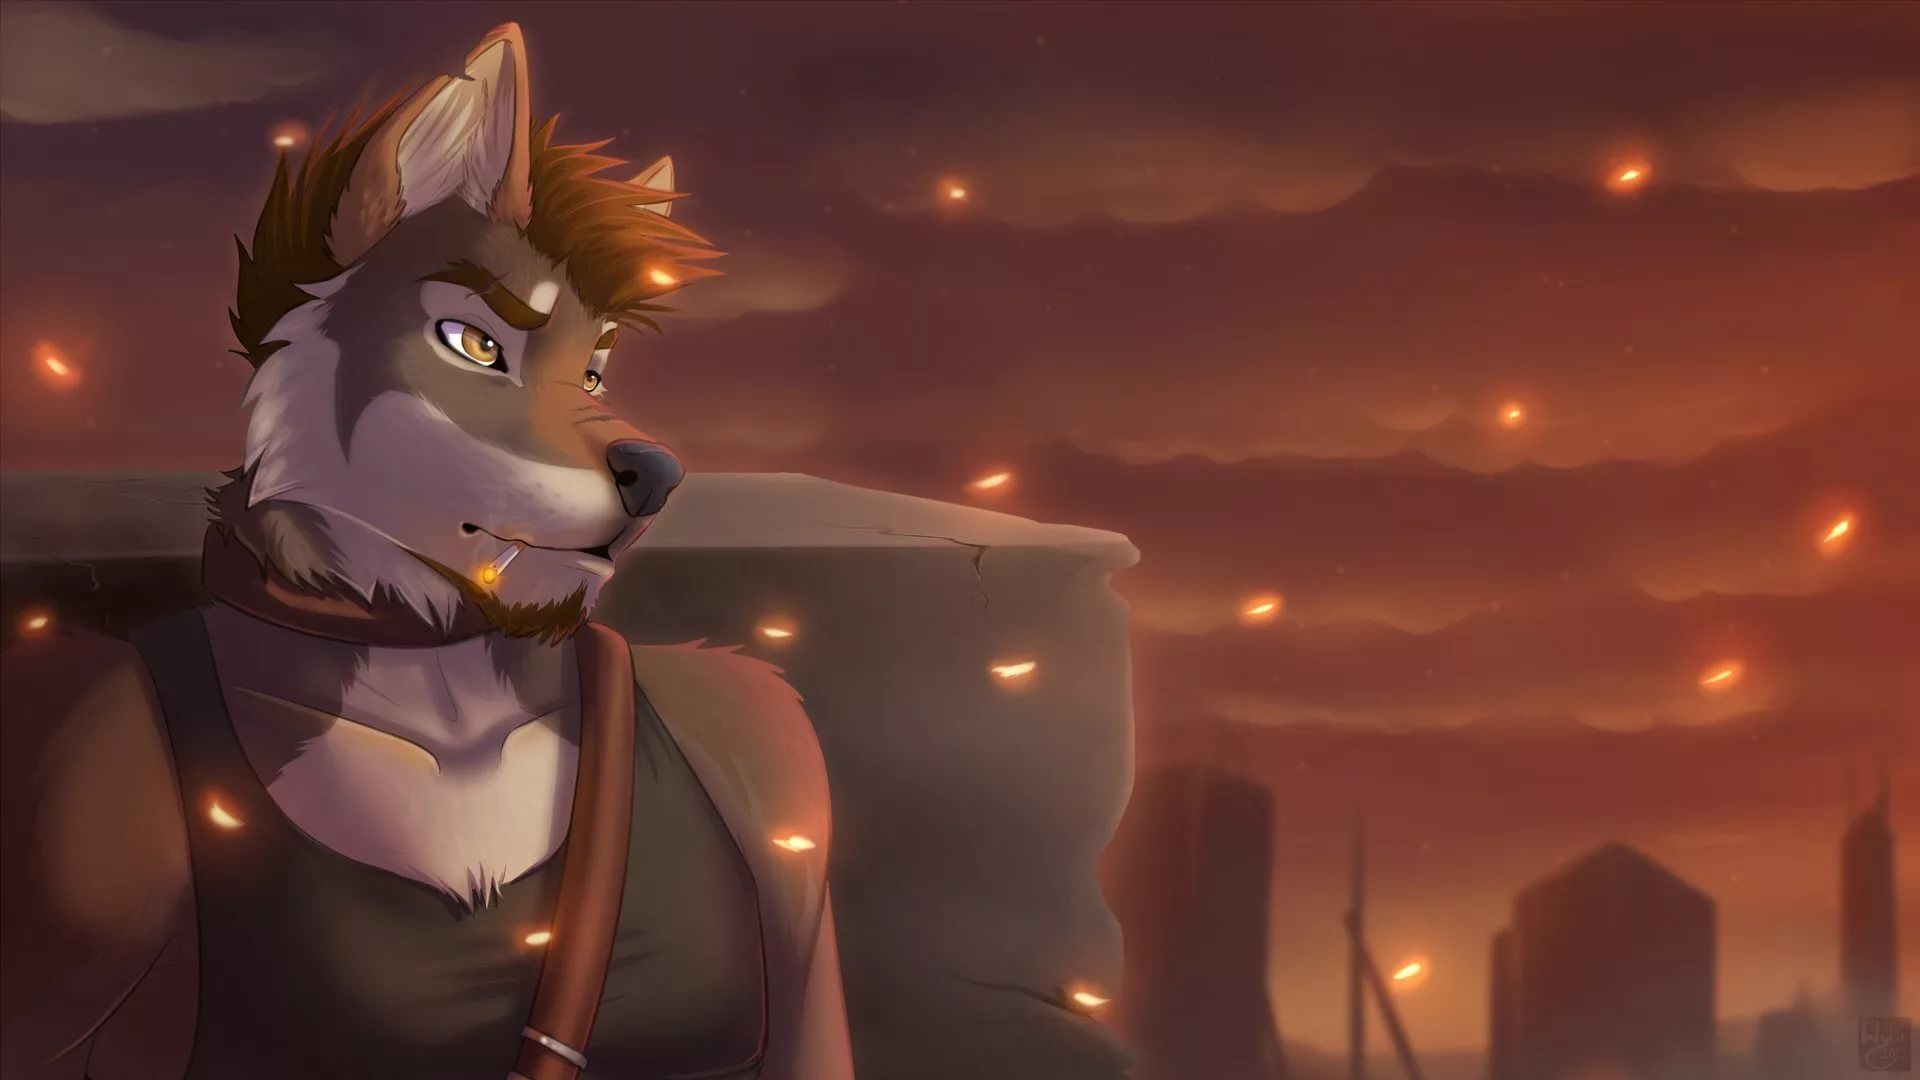 Furry Background download free wallpaper image search